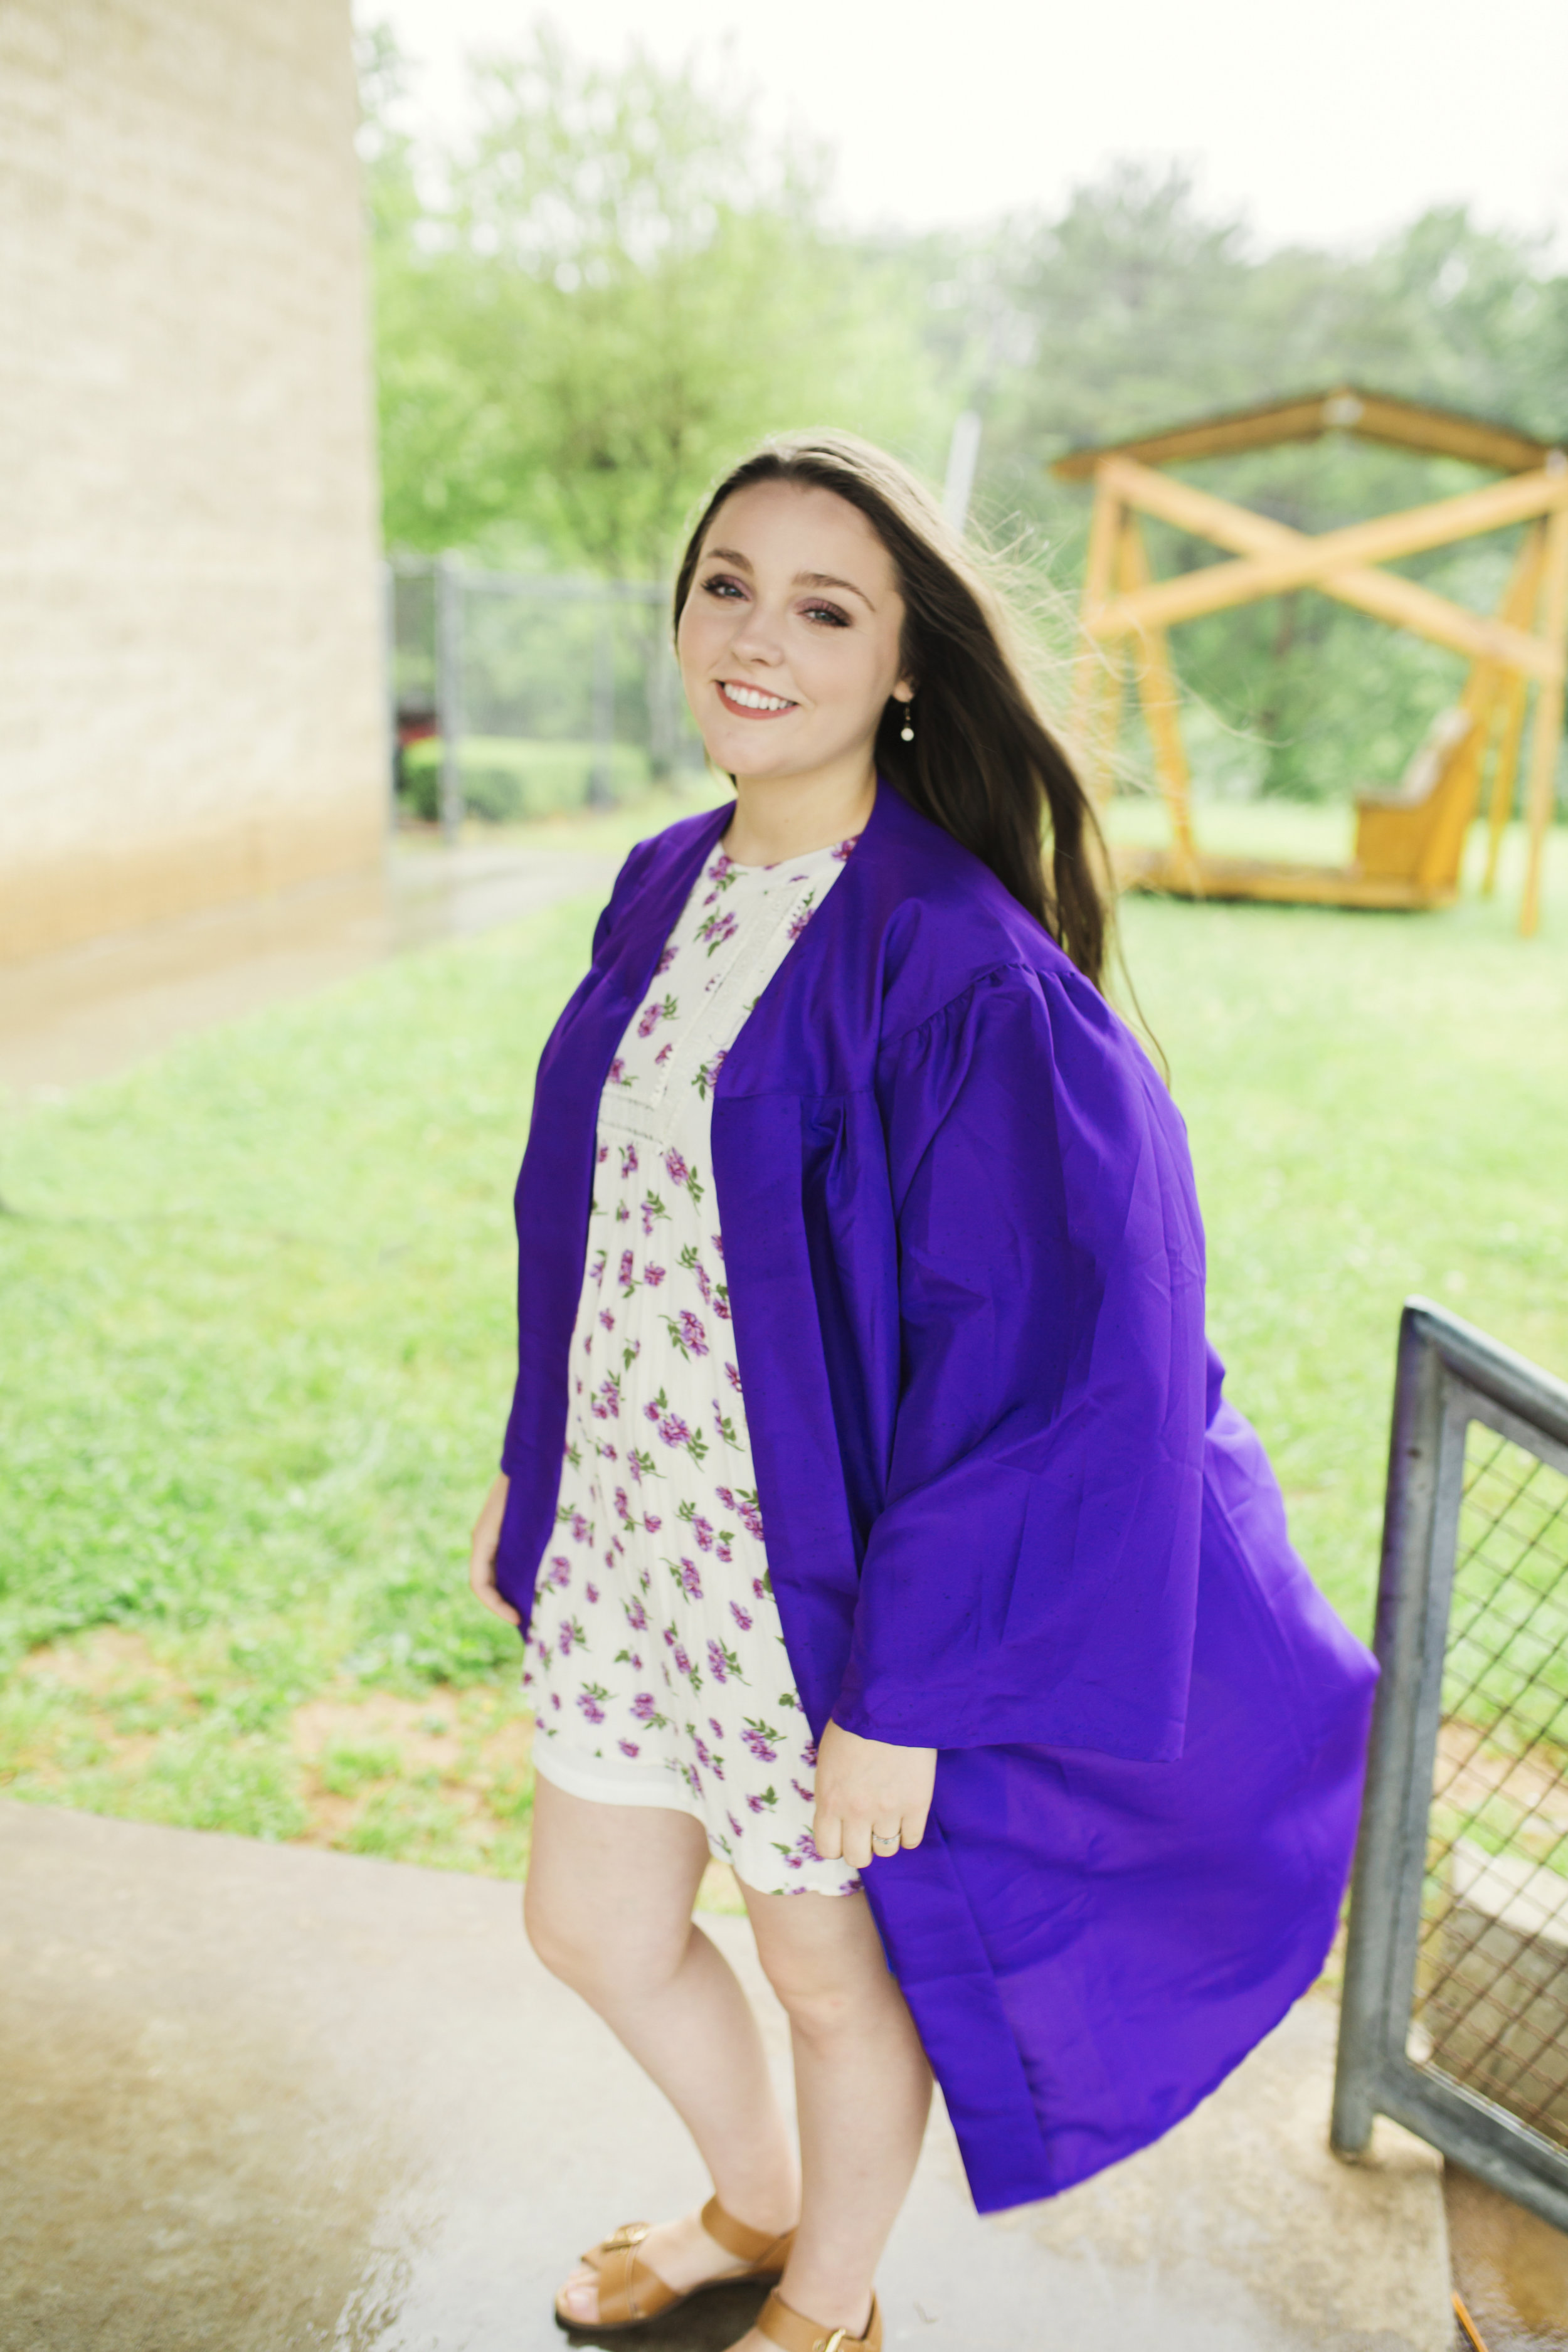 abby cap and gown 160.JPG